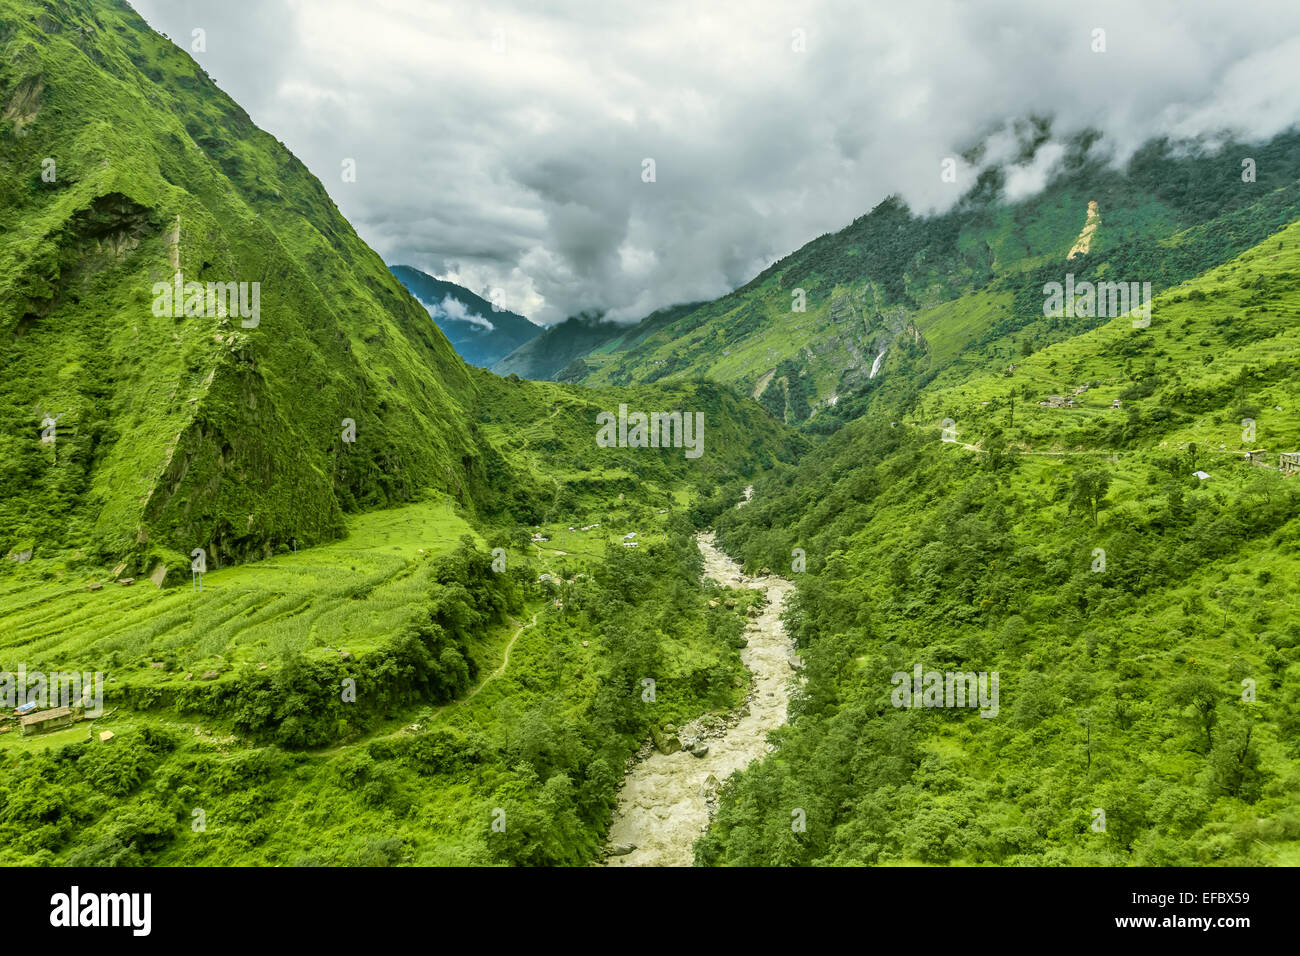 Trekking in Nepal. - Stock Image